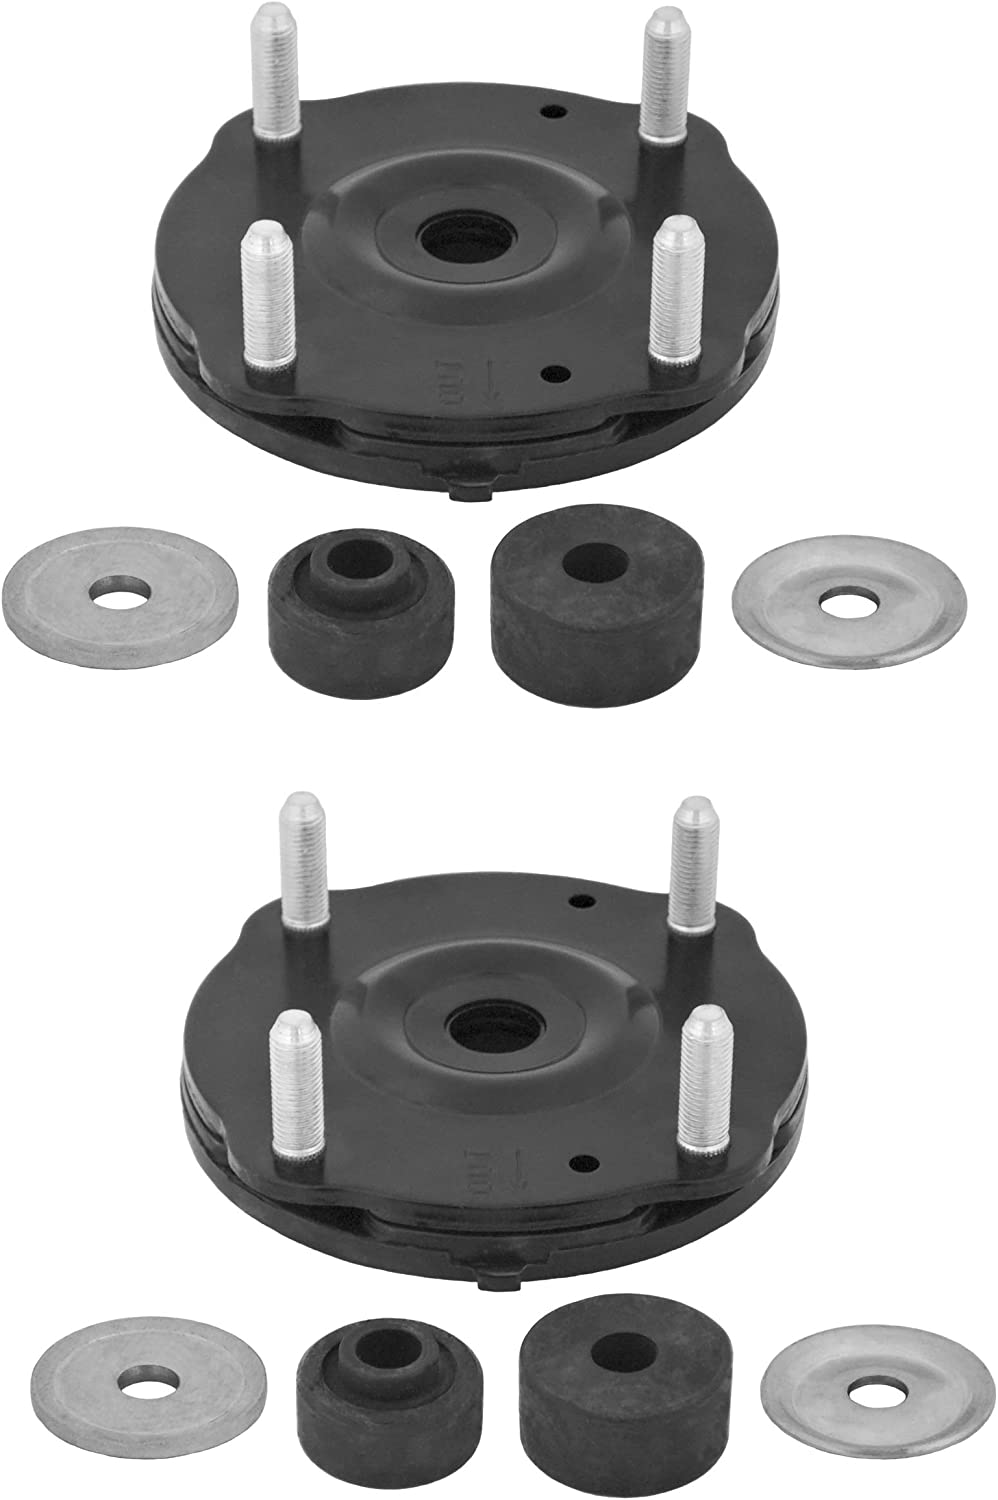 Pair Set Of 2 Front KYB Suspension Strut Mounts Kit For Toyota Sequoia 2008-2014 Tundra 2007-2016 NEW